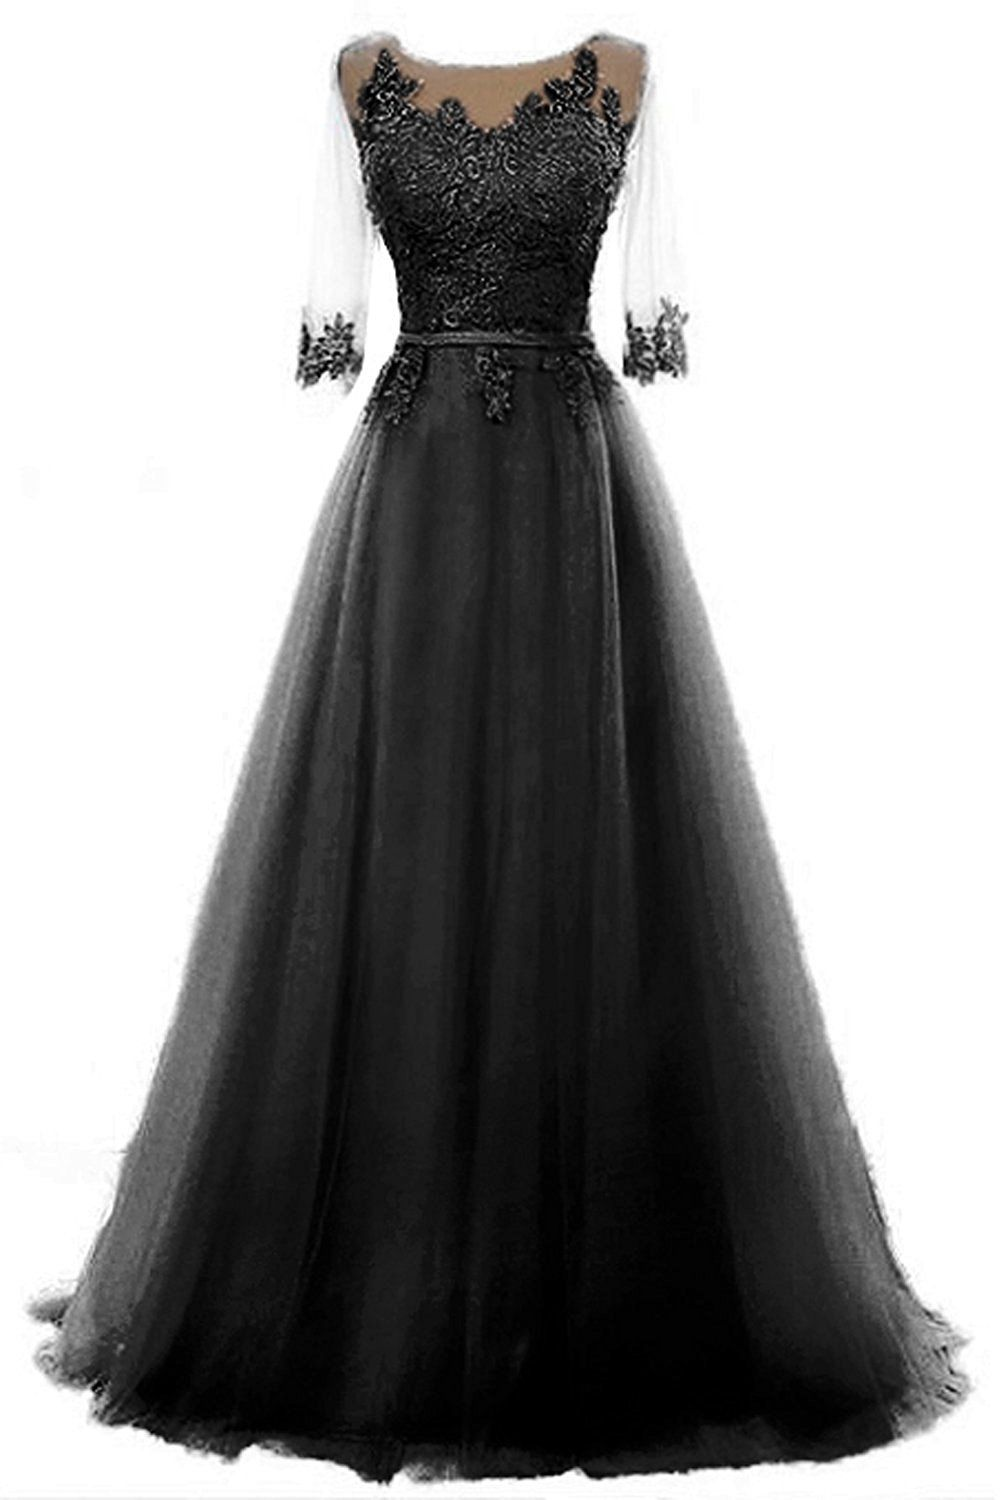 Ballgown Prom Dress Amazoncouk Clothing Party Dresses A Wide